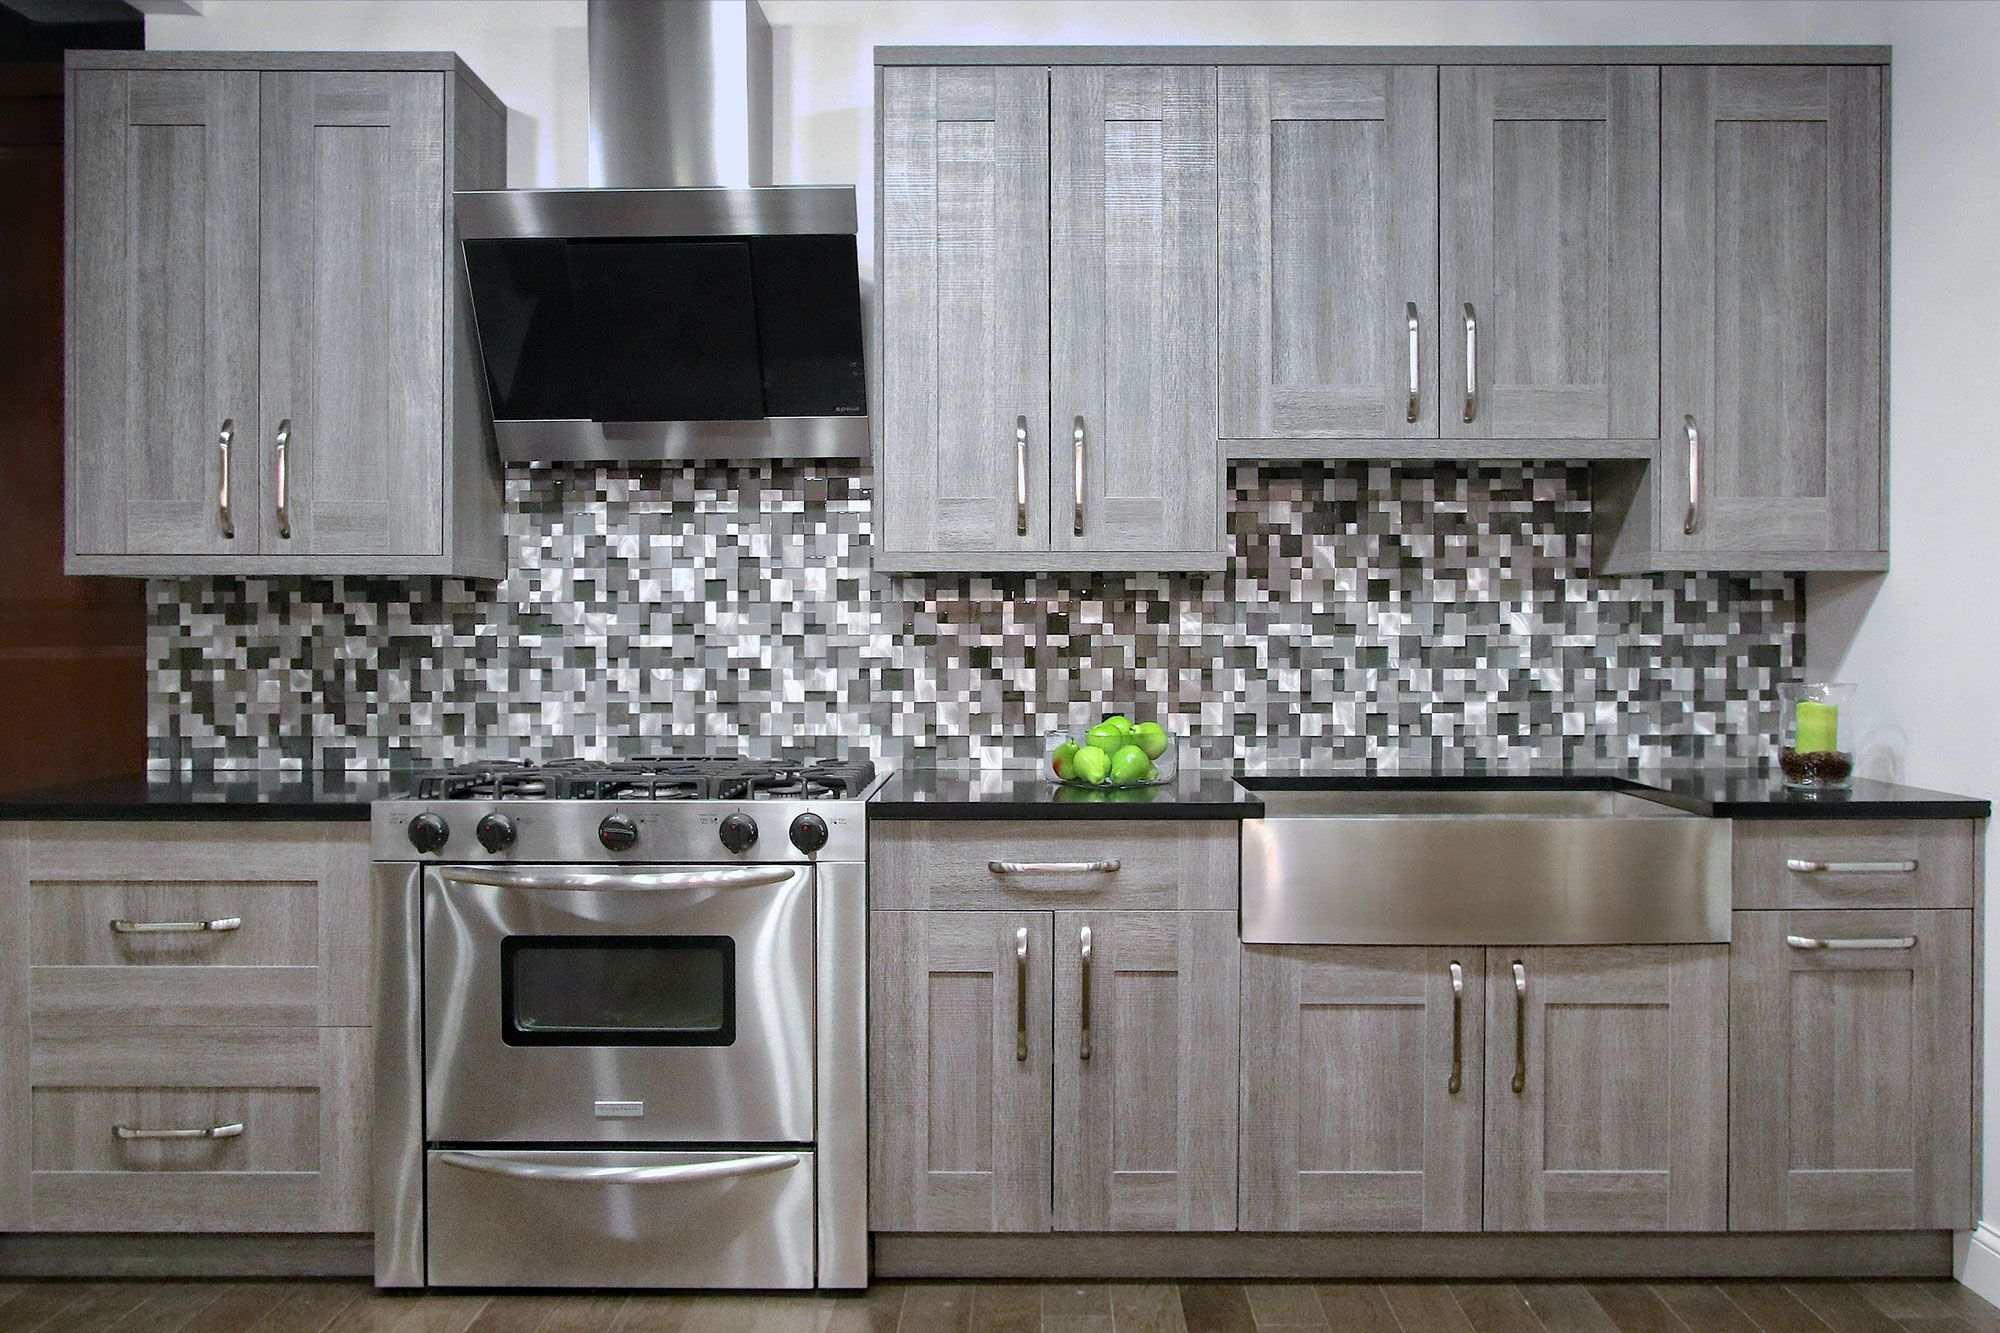 Maple Melamine Kitchen Cabinets Vs Wood Melamine Kitchen Cabinets And Bathroom Vanity Cabinets